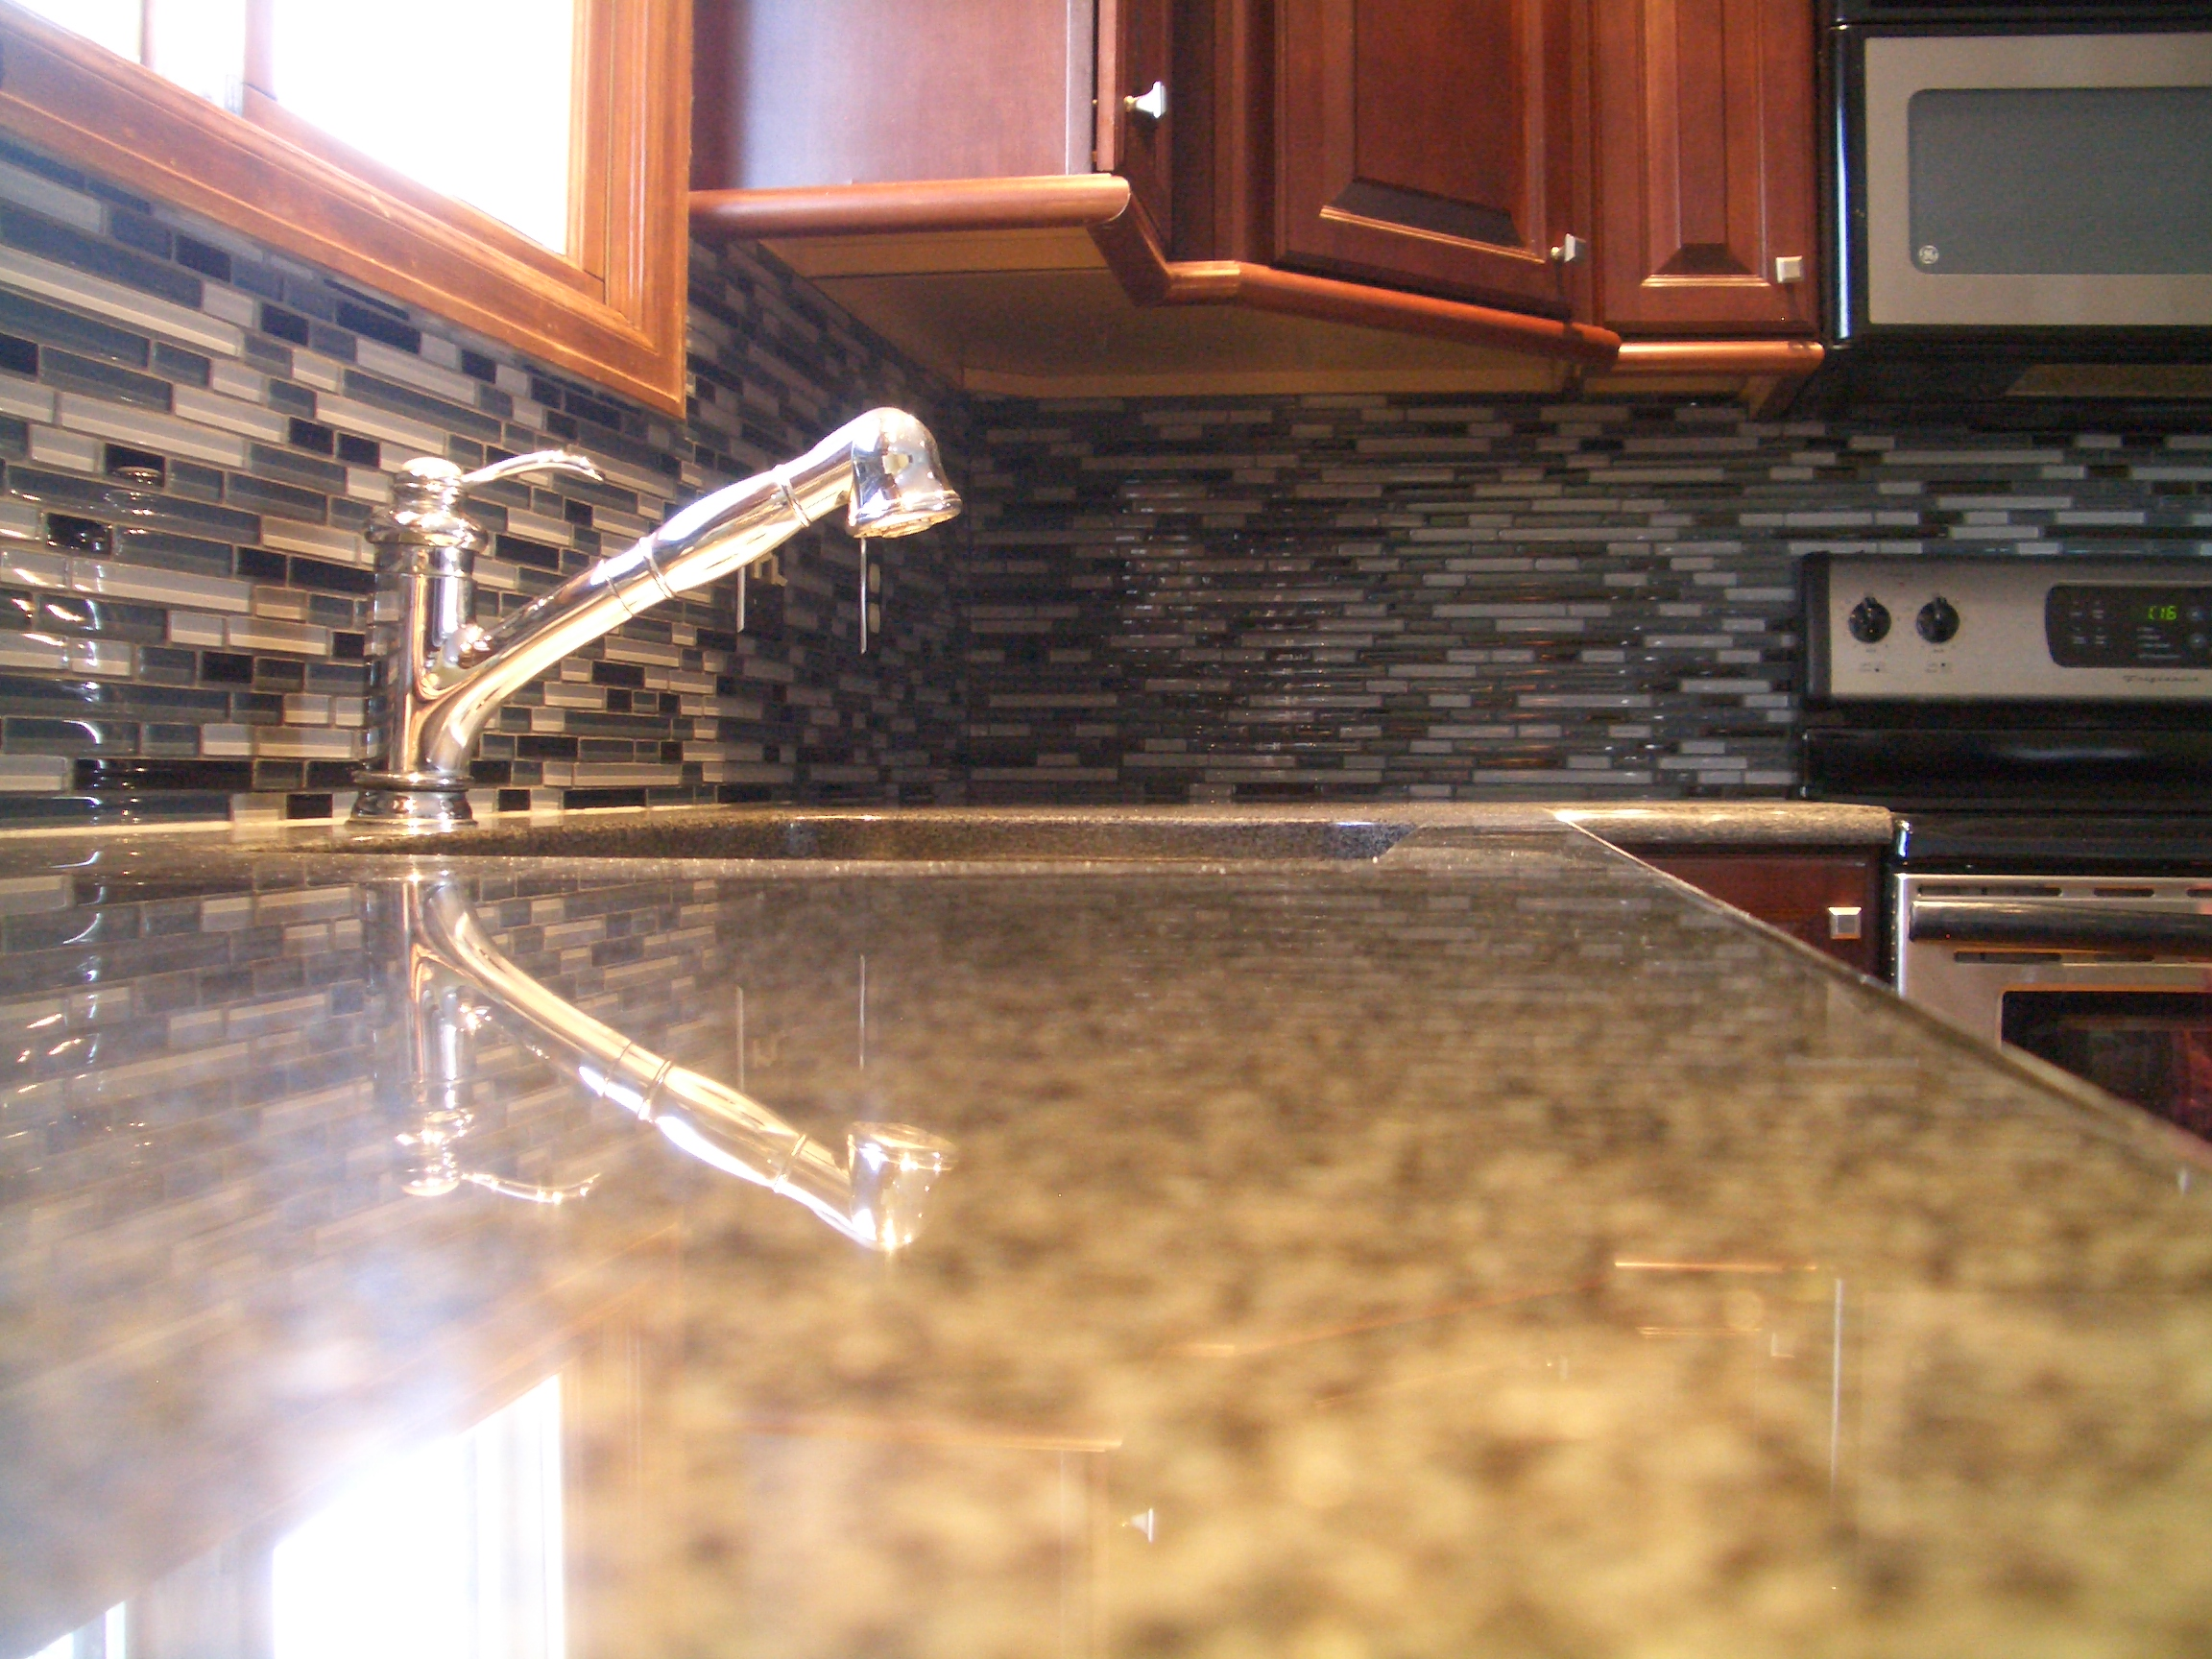 glass tile kitchen backsplash special kitchen backsplash glass tiles Grey stack glass tile backsplash